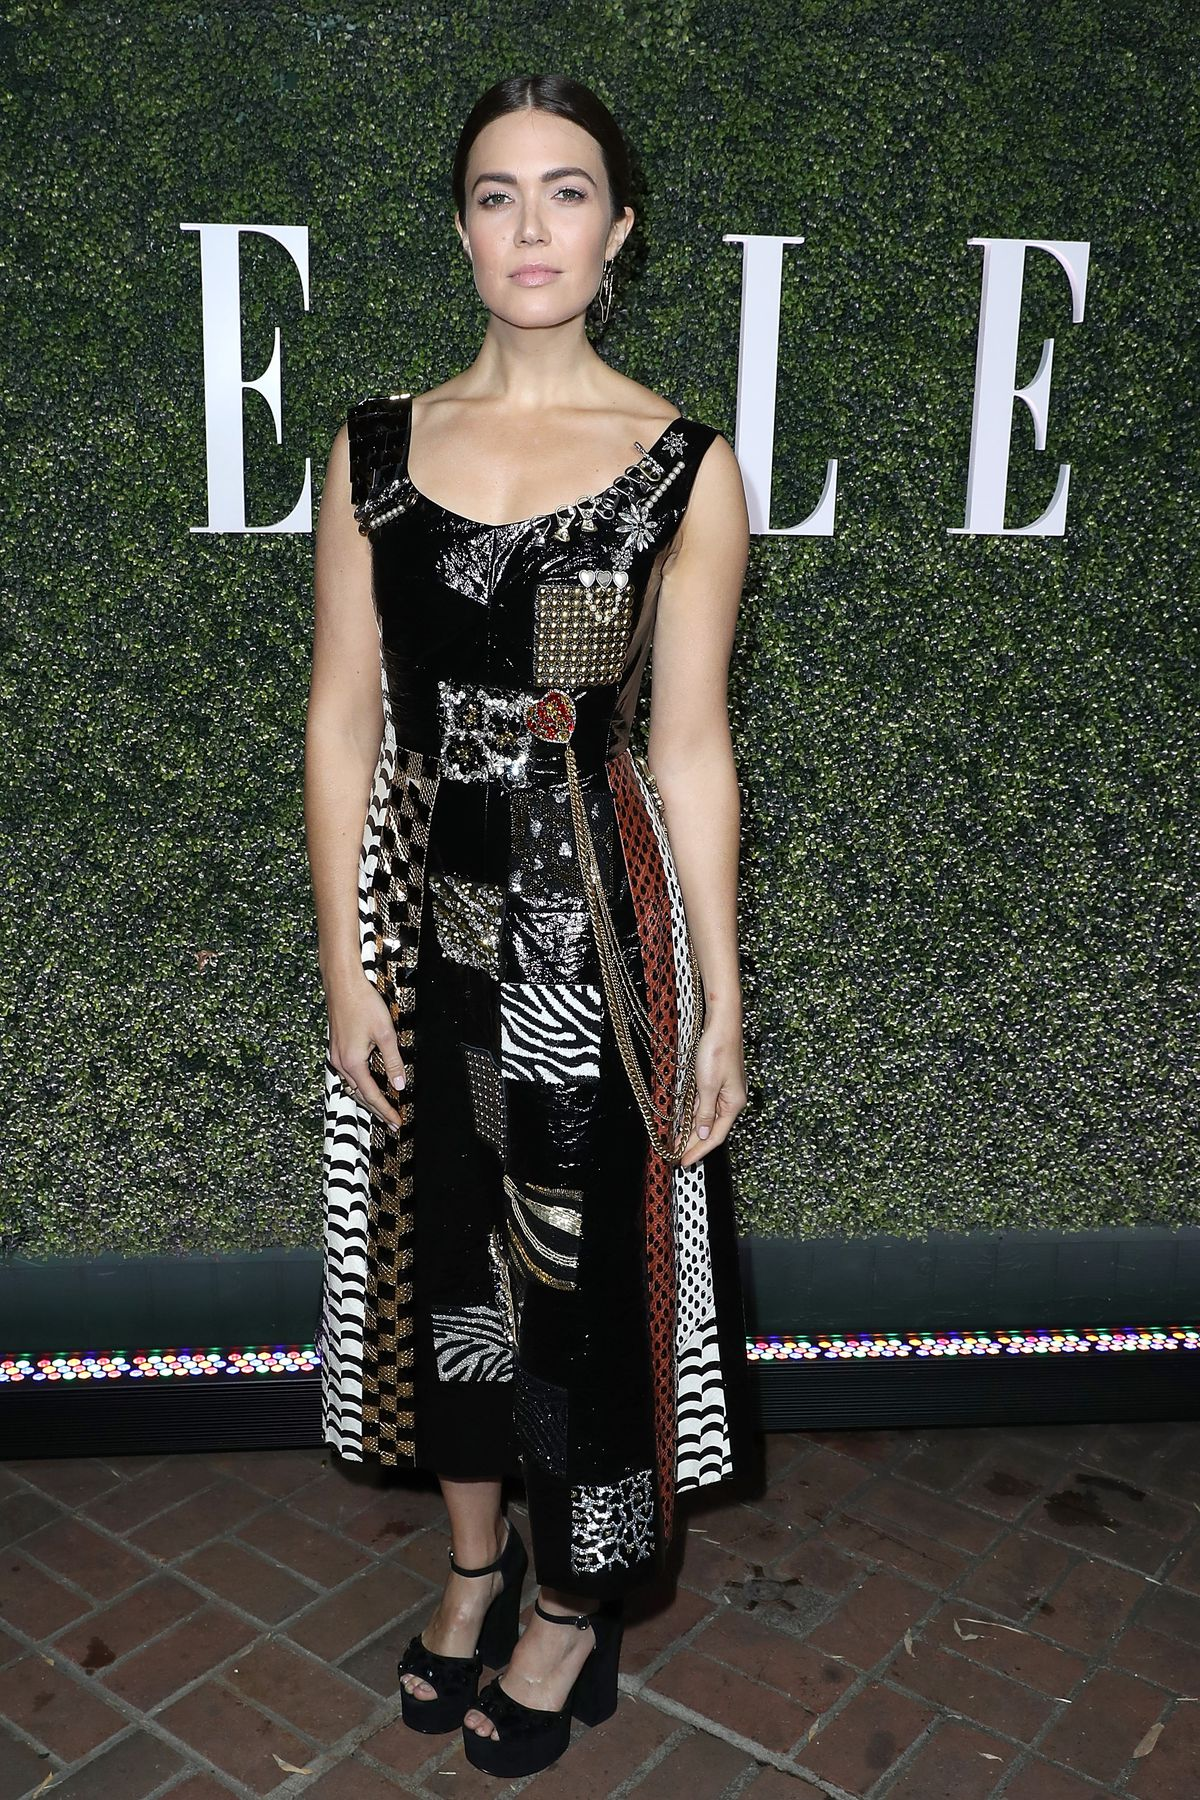 Mandy Moore attends the ELLE's Annual Women In Television Celebration 2017 - Red Carpet at Chateau Marmont on January 14, 2017 in Los Angeles, California.